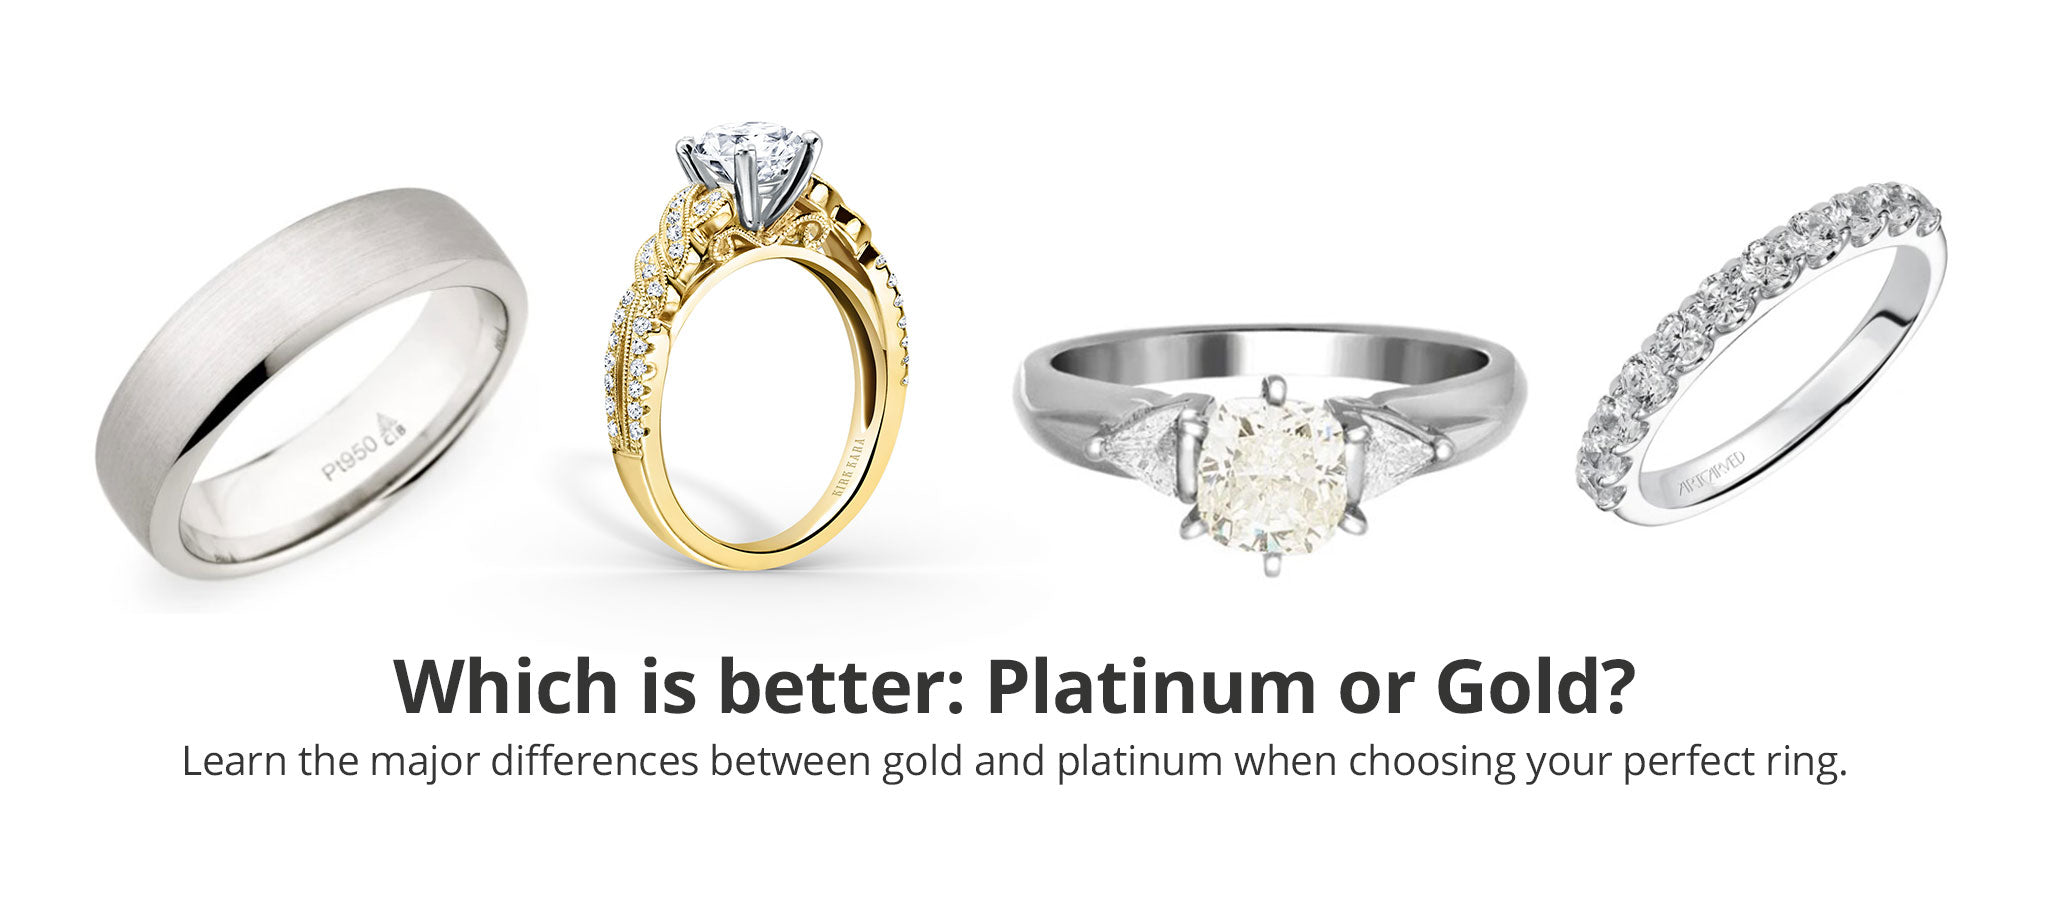 Which is better: Platinum or Gold?